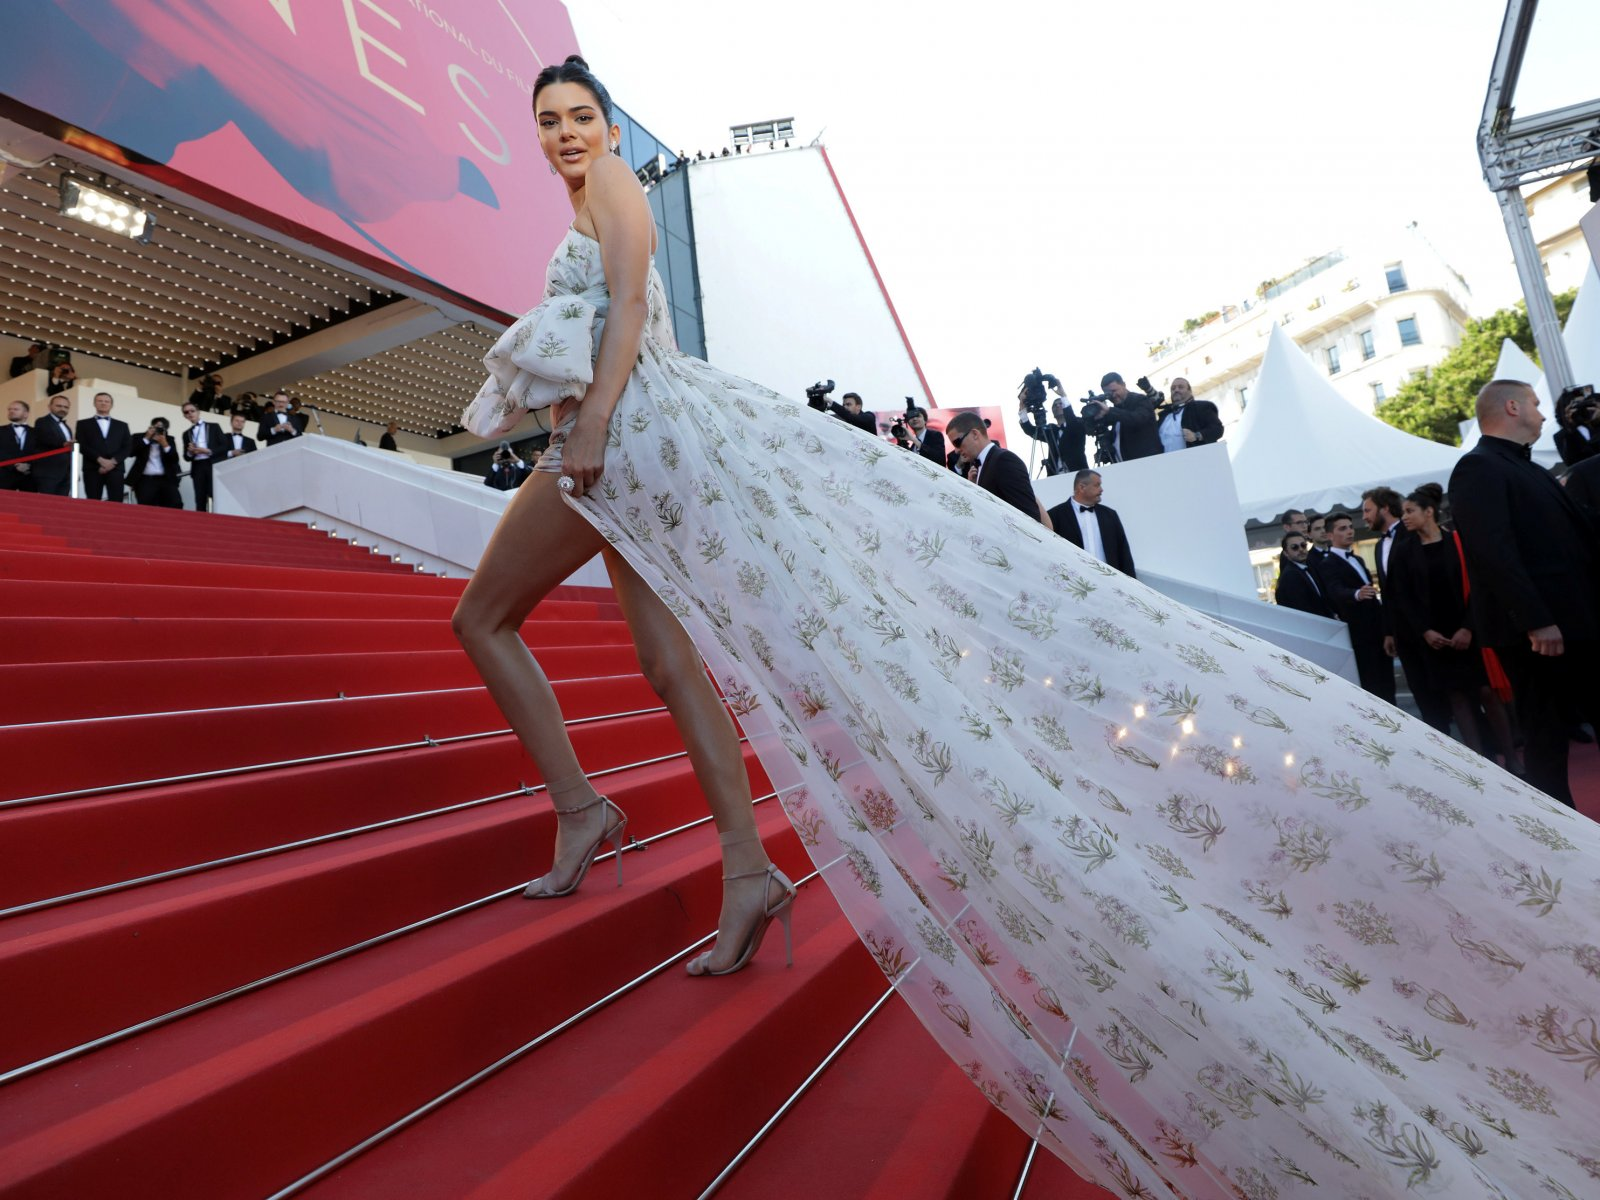 How to make a photo on the red carpet at the Palais des Festivals in Cannes